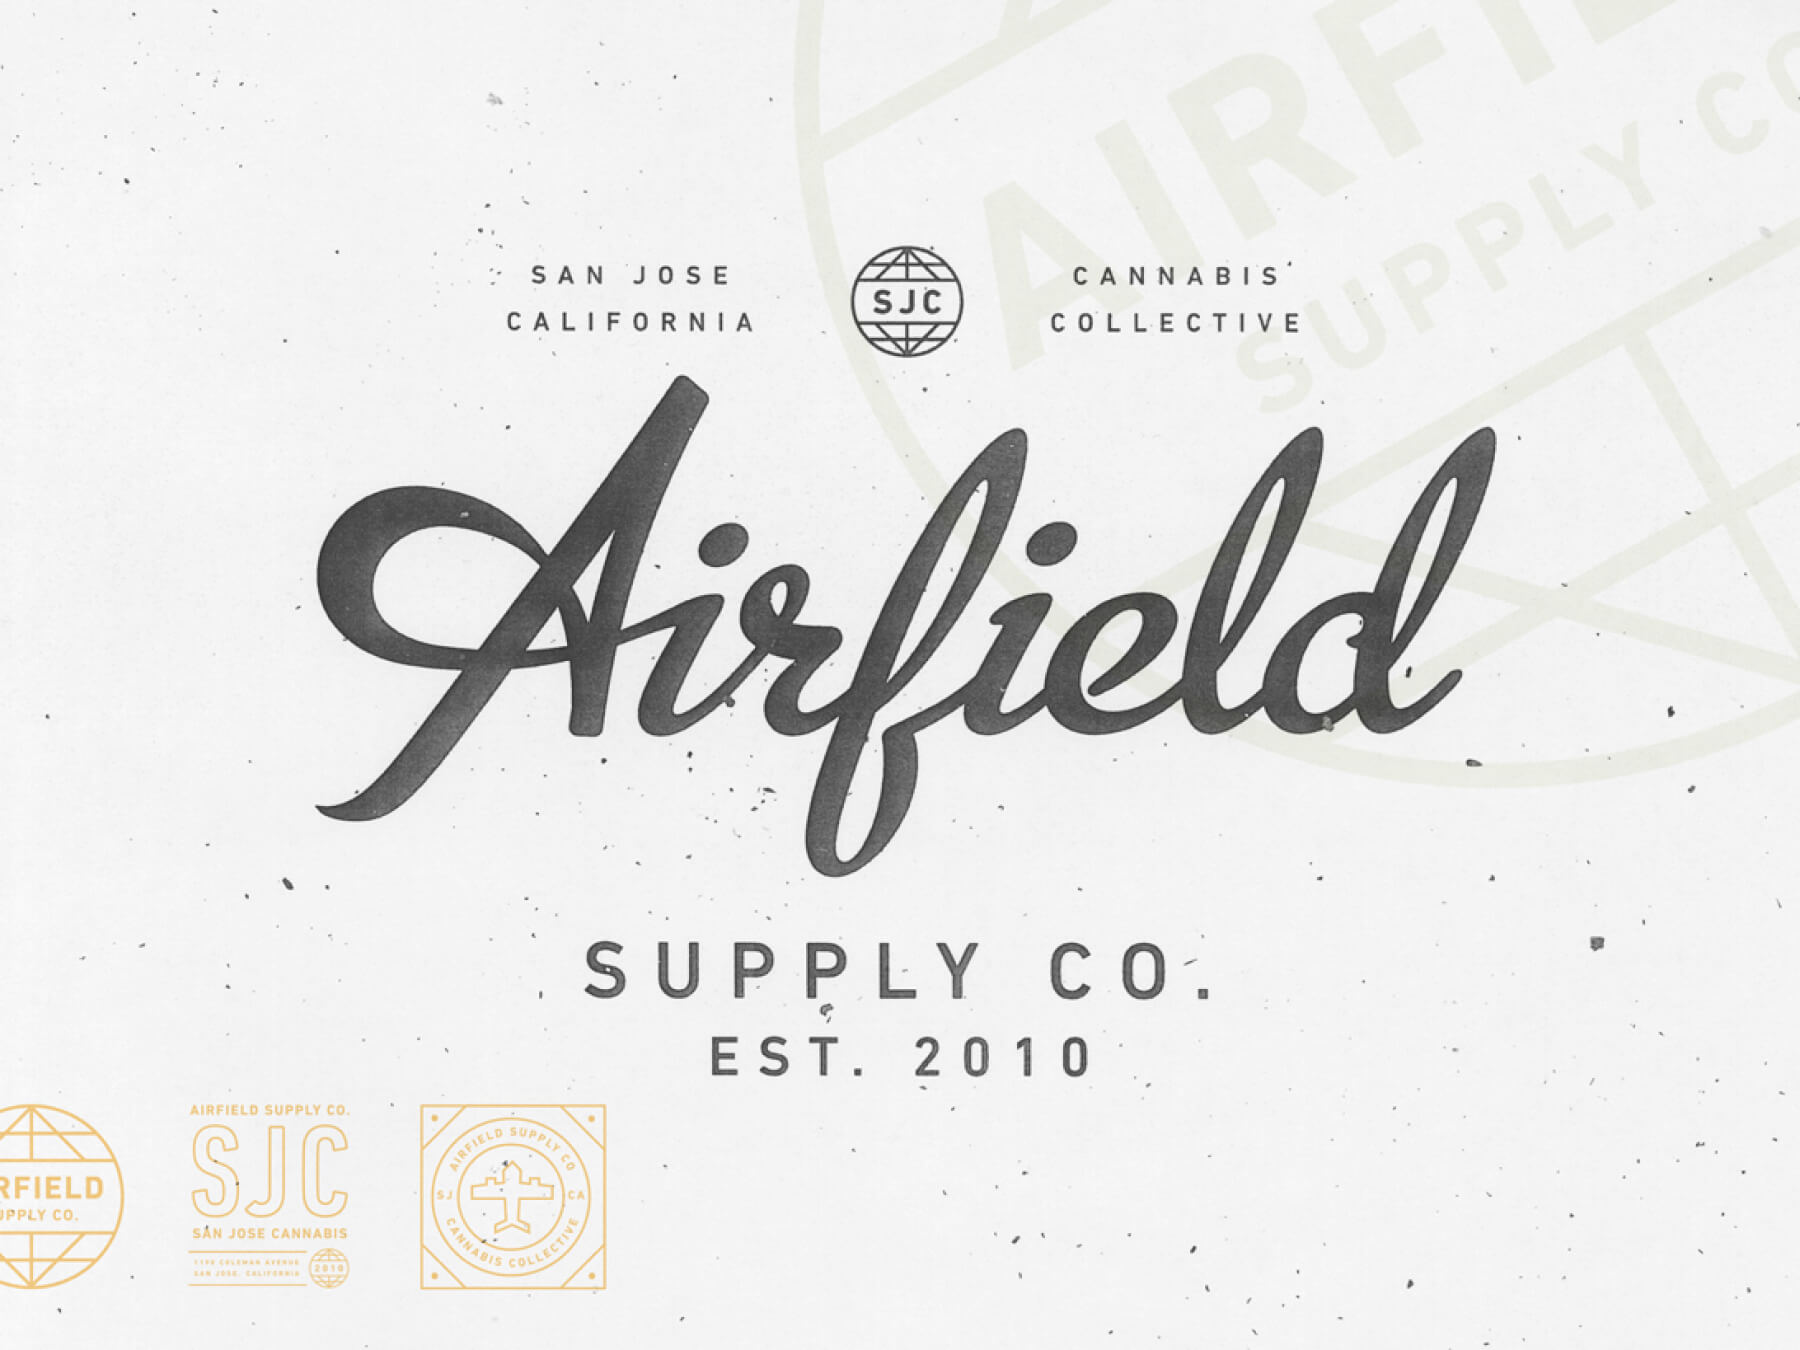 Airfield Supply Co.